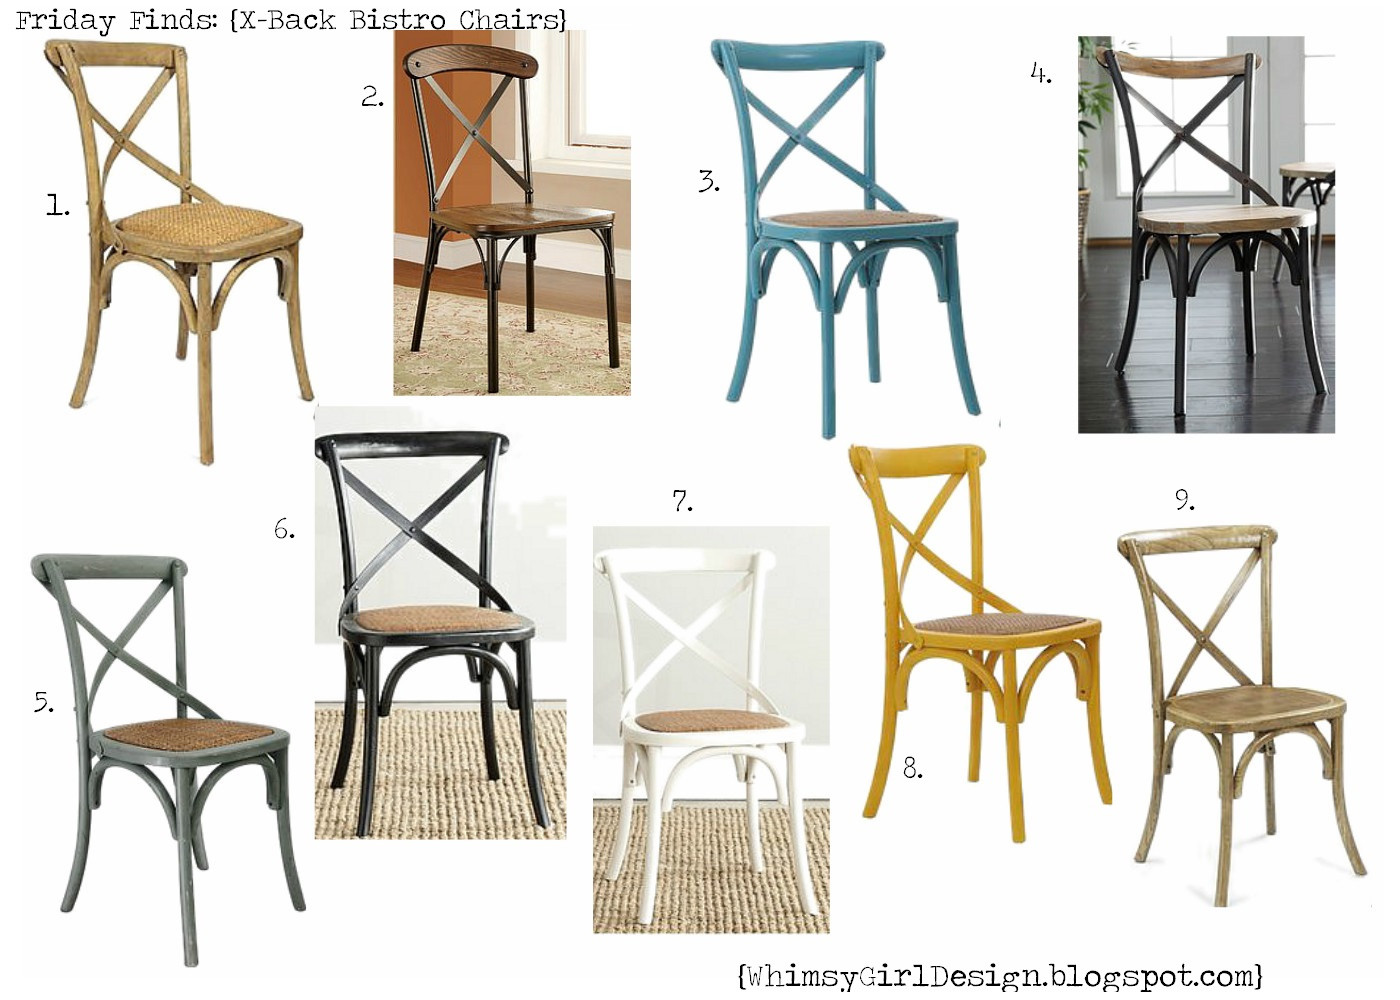 Friday Finds: {X Back Bistro Chairs}